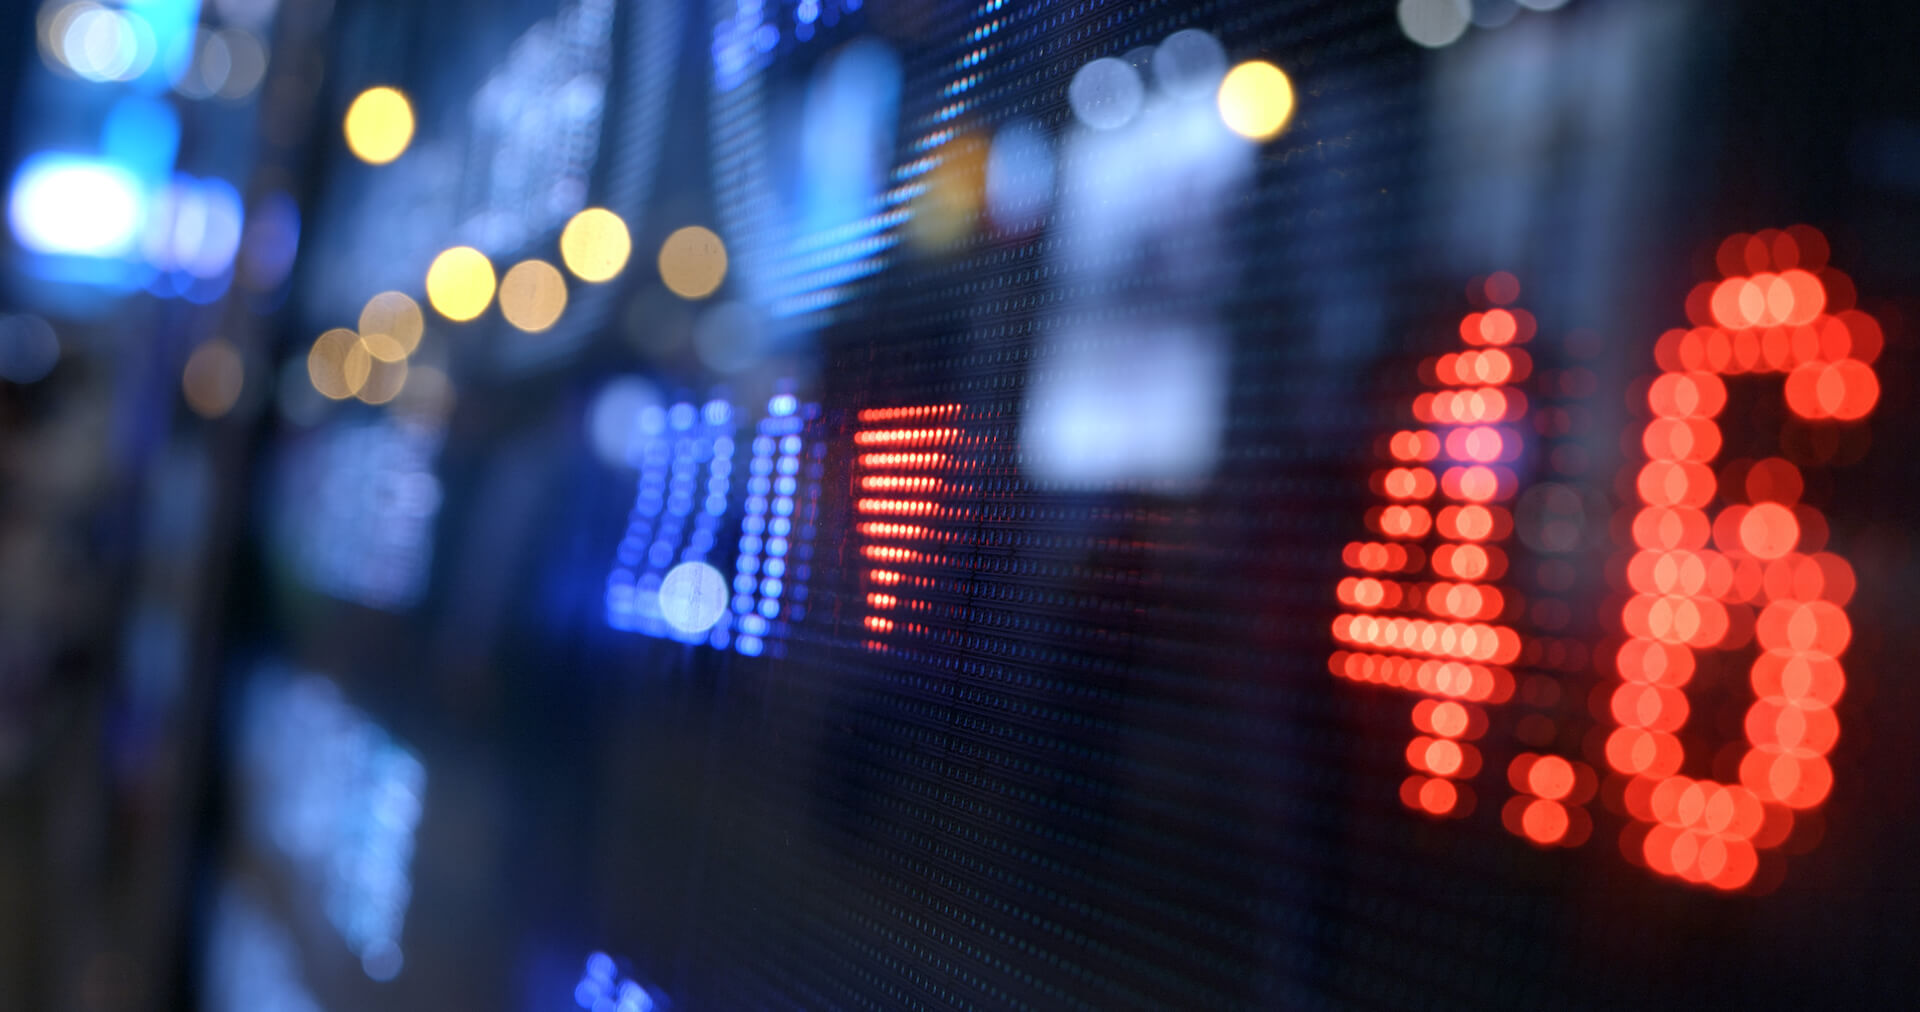 Why were the markets lower in September?